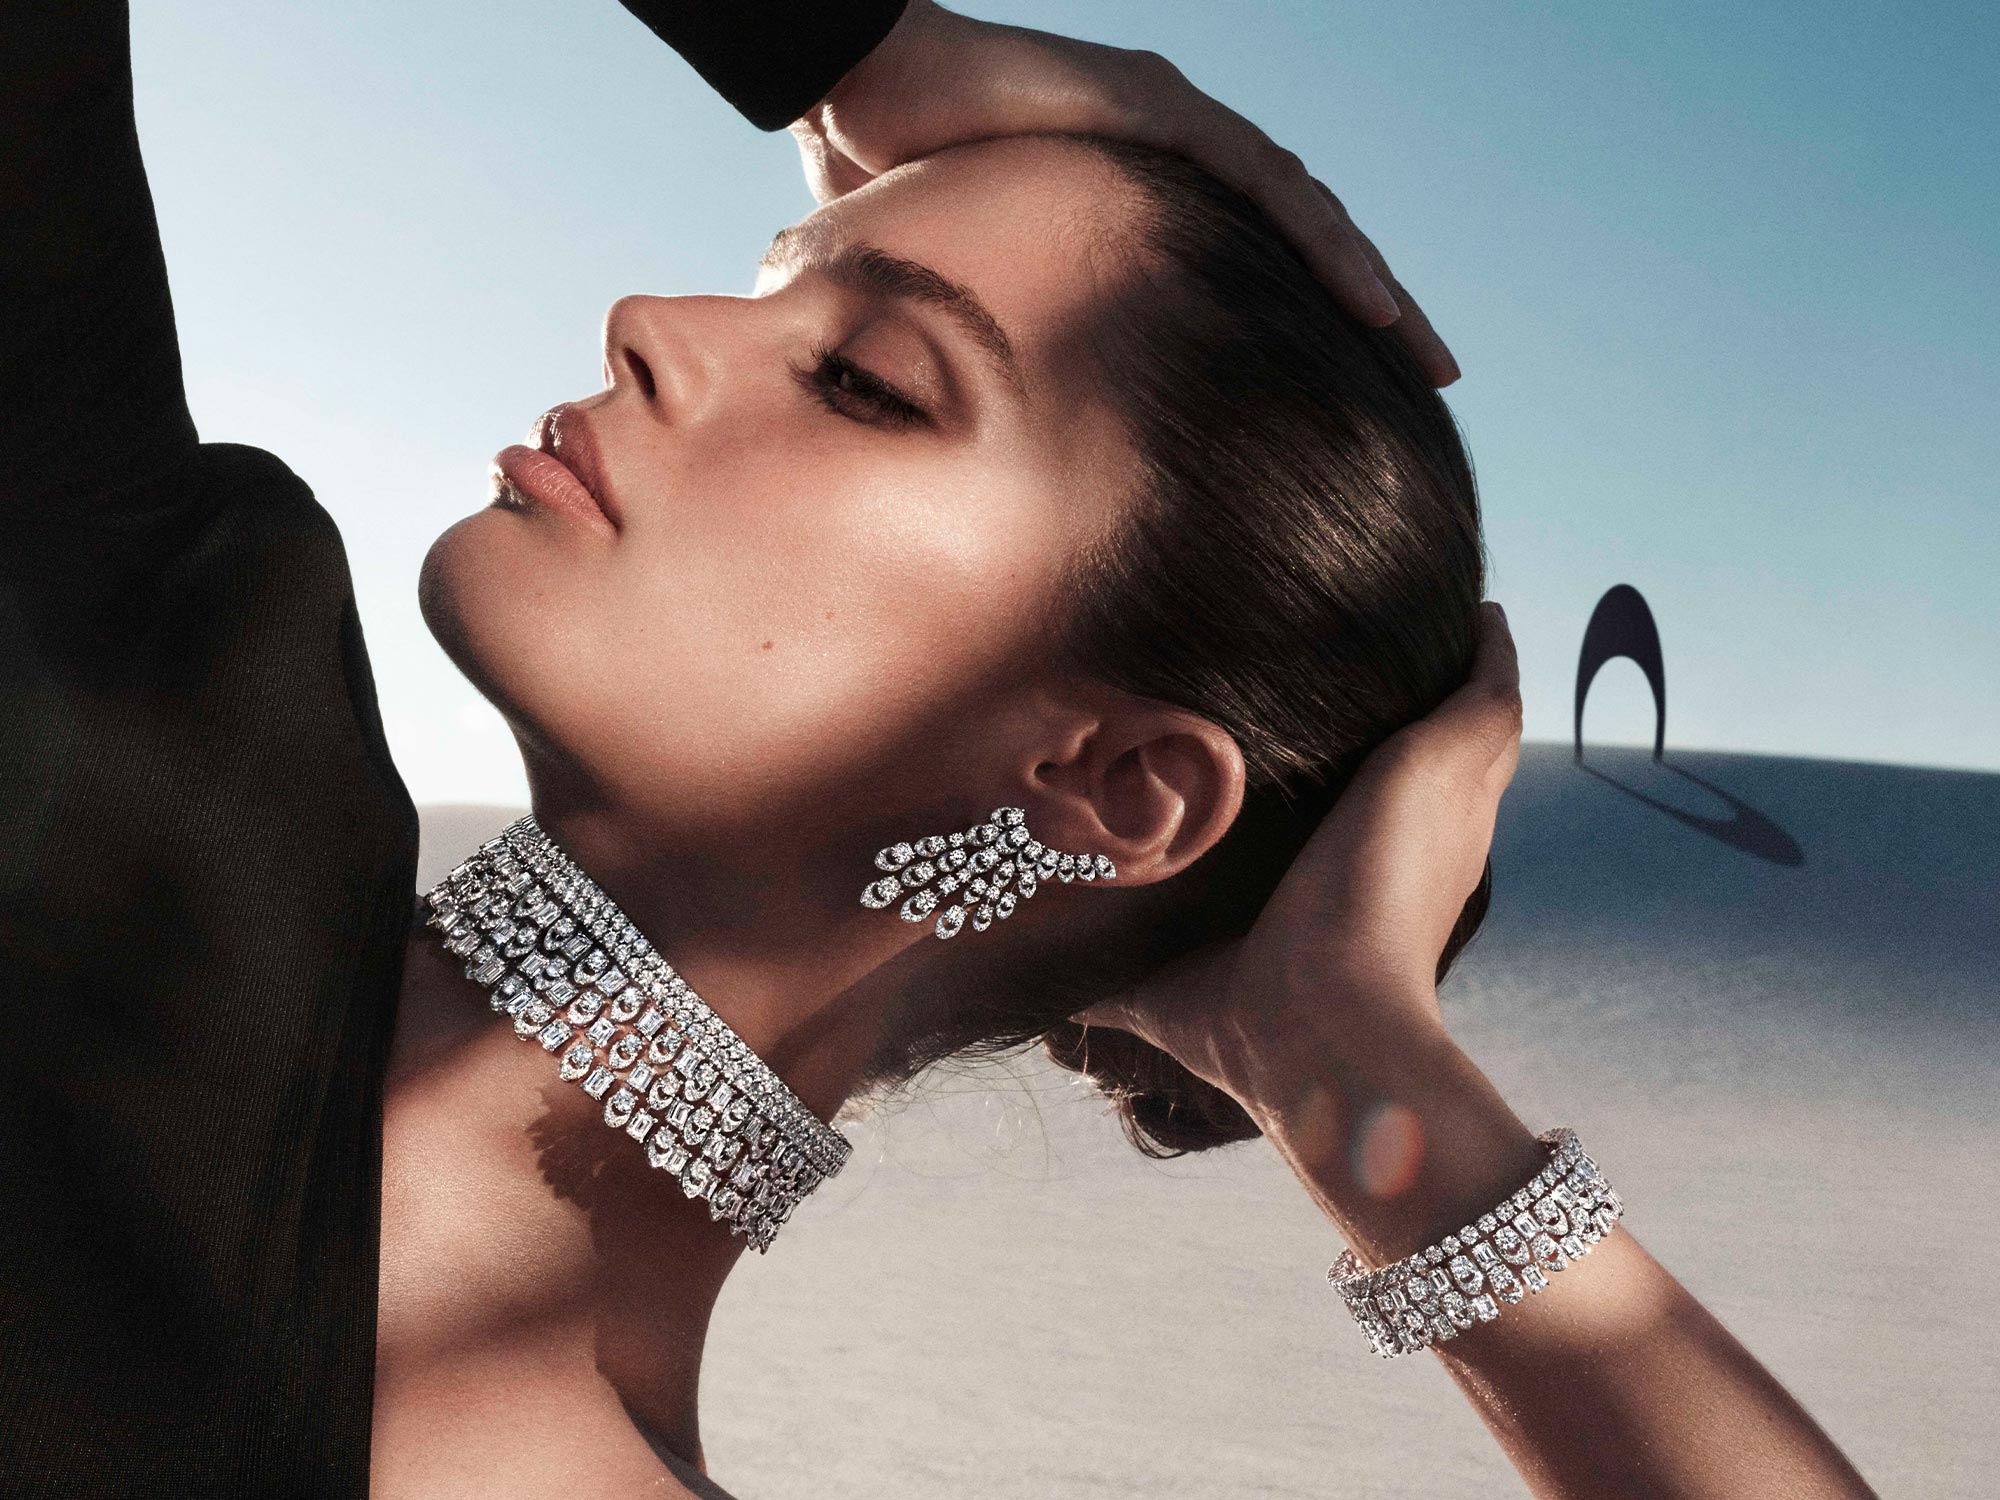 Close up of a model wearing Graff Gateway diamond earrings, necklace and bracelet from the Tribal jewellery collection, in a desert